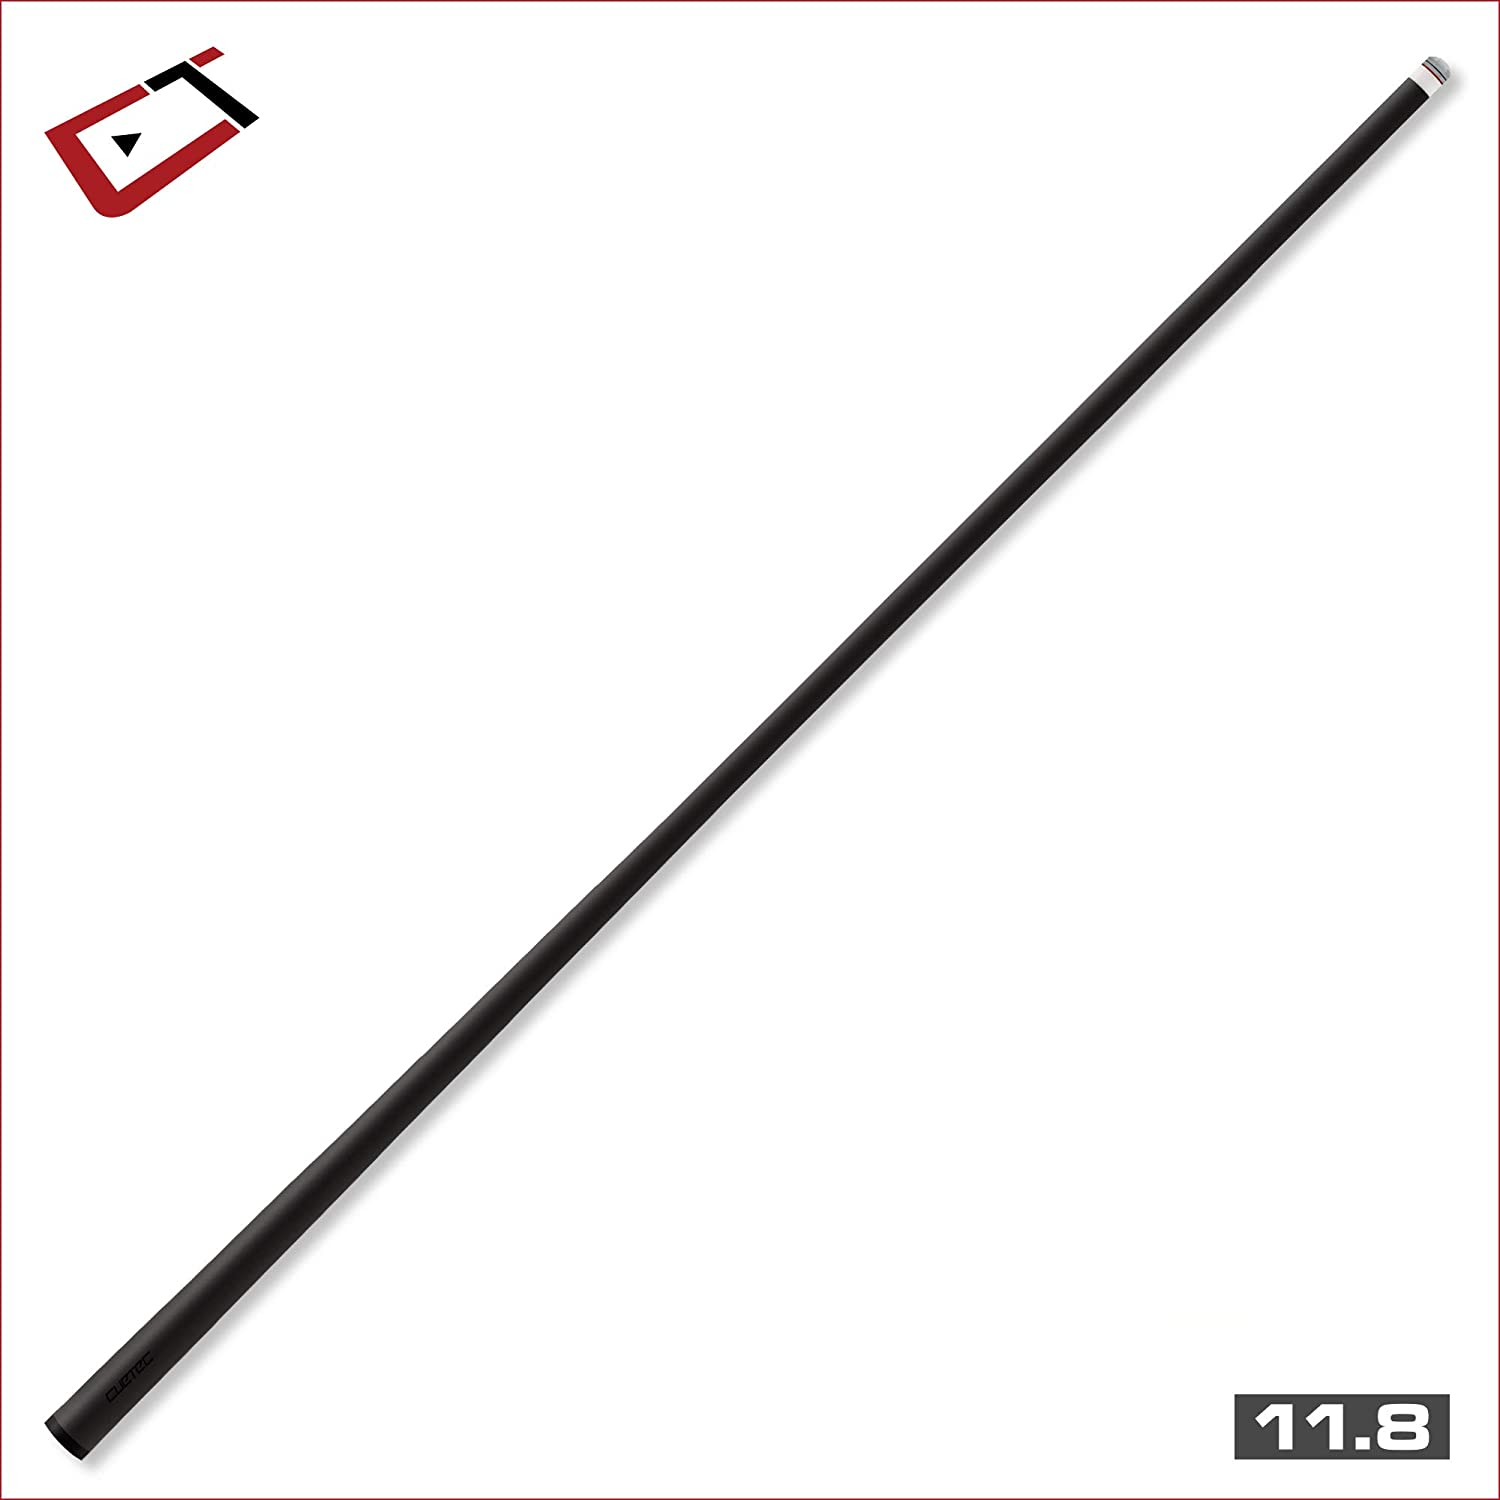 3//8 x 10 Cuetec Cynergy CT-15K 11.8mm Carbon Fiber Low Deflection Pool Cue Shaft